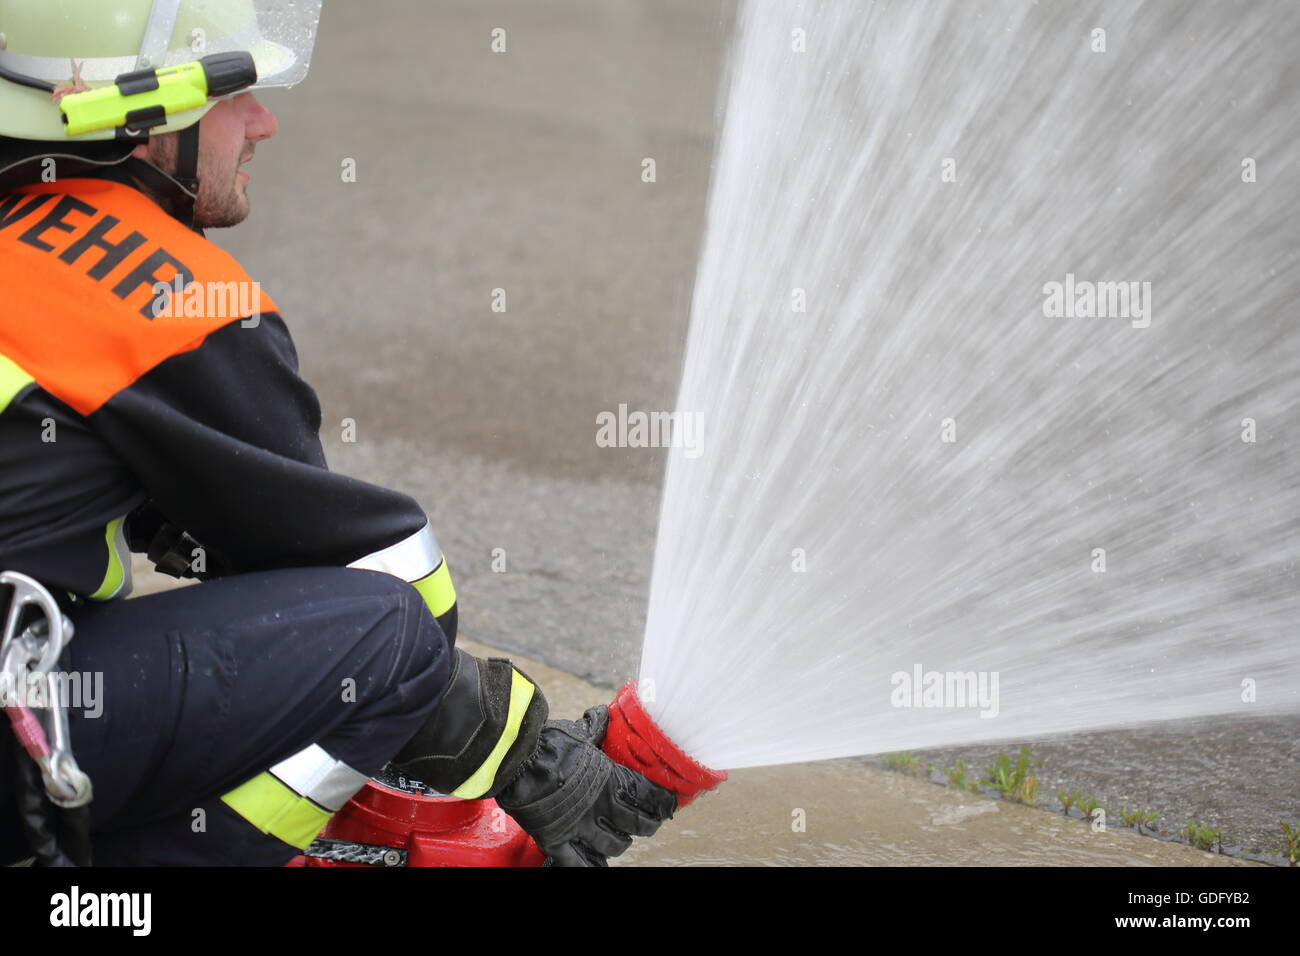 A Firefighter with monitor water cannon spray lance - Stock Image